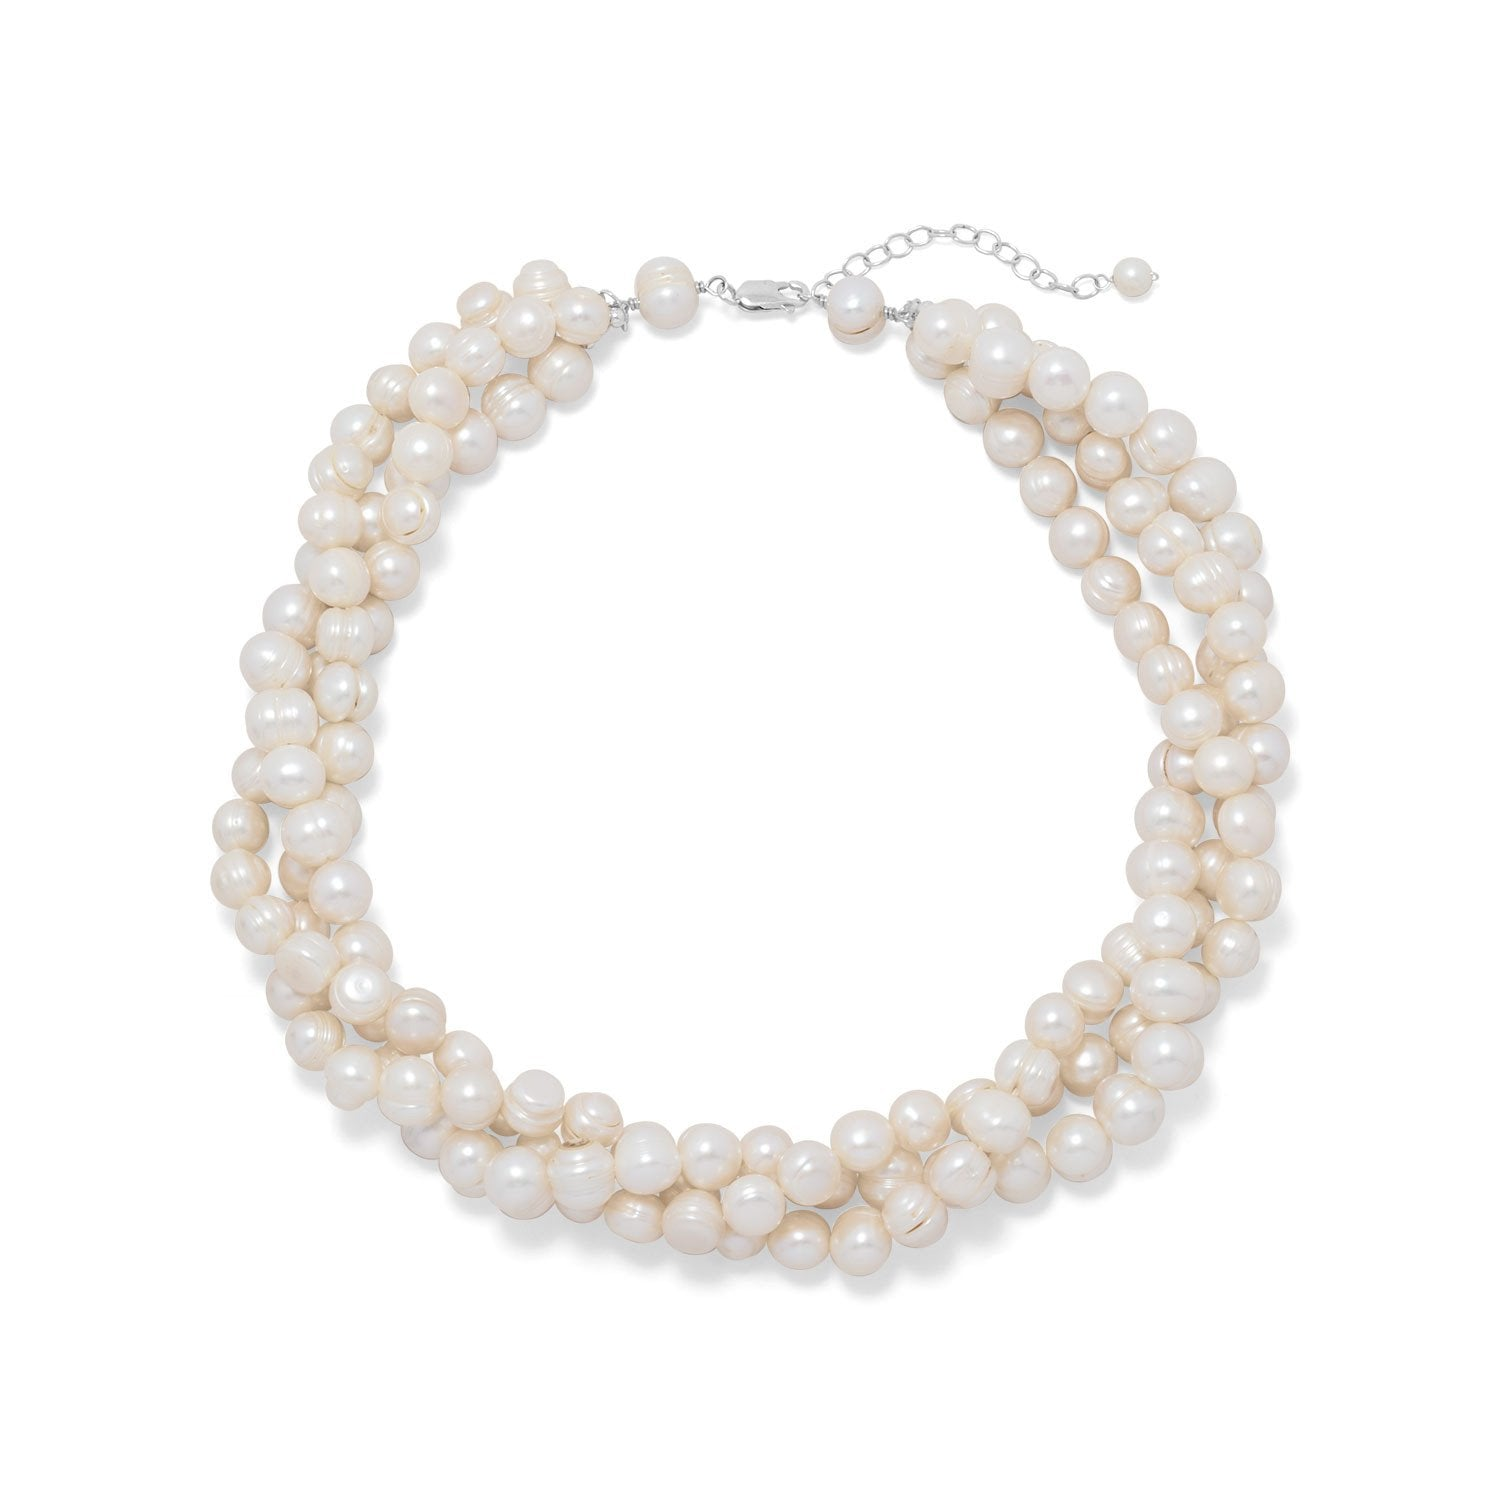 Multistrand Cultured Freshwater Pearl Necklace - the-southern-magnolia-too